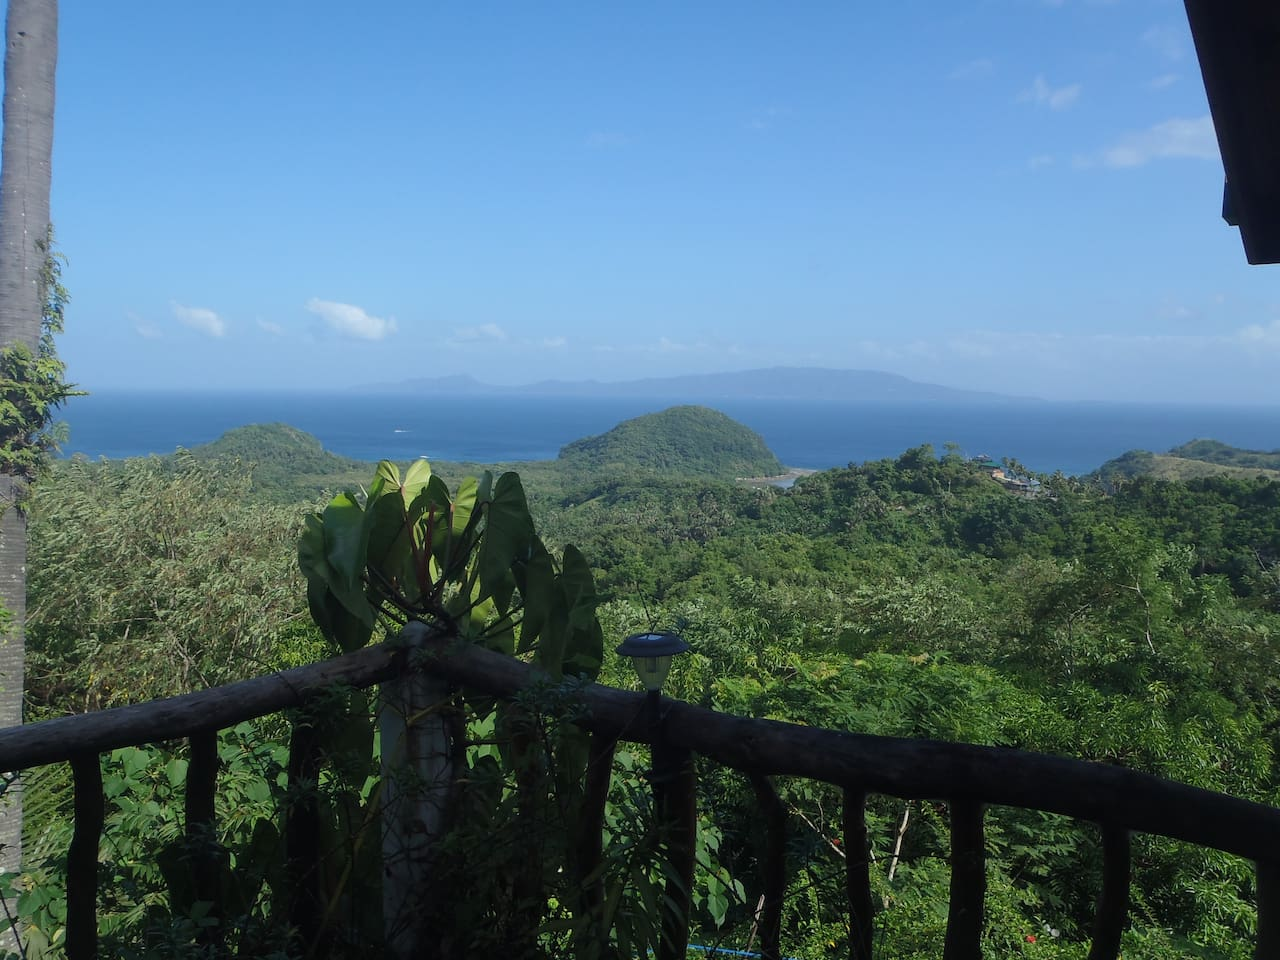 View from the verandah of jungle below i and the South China Sea beyond